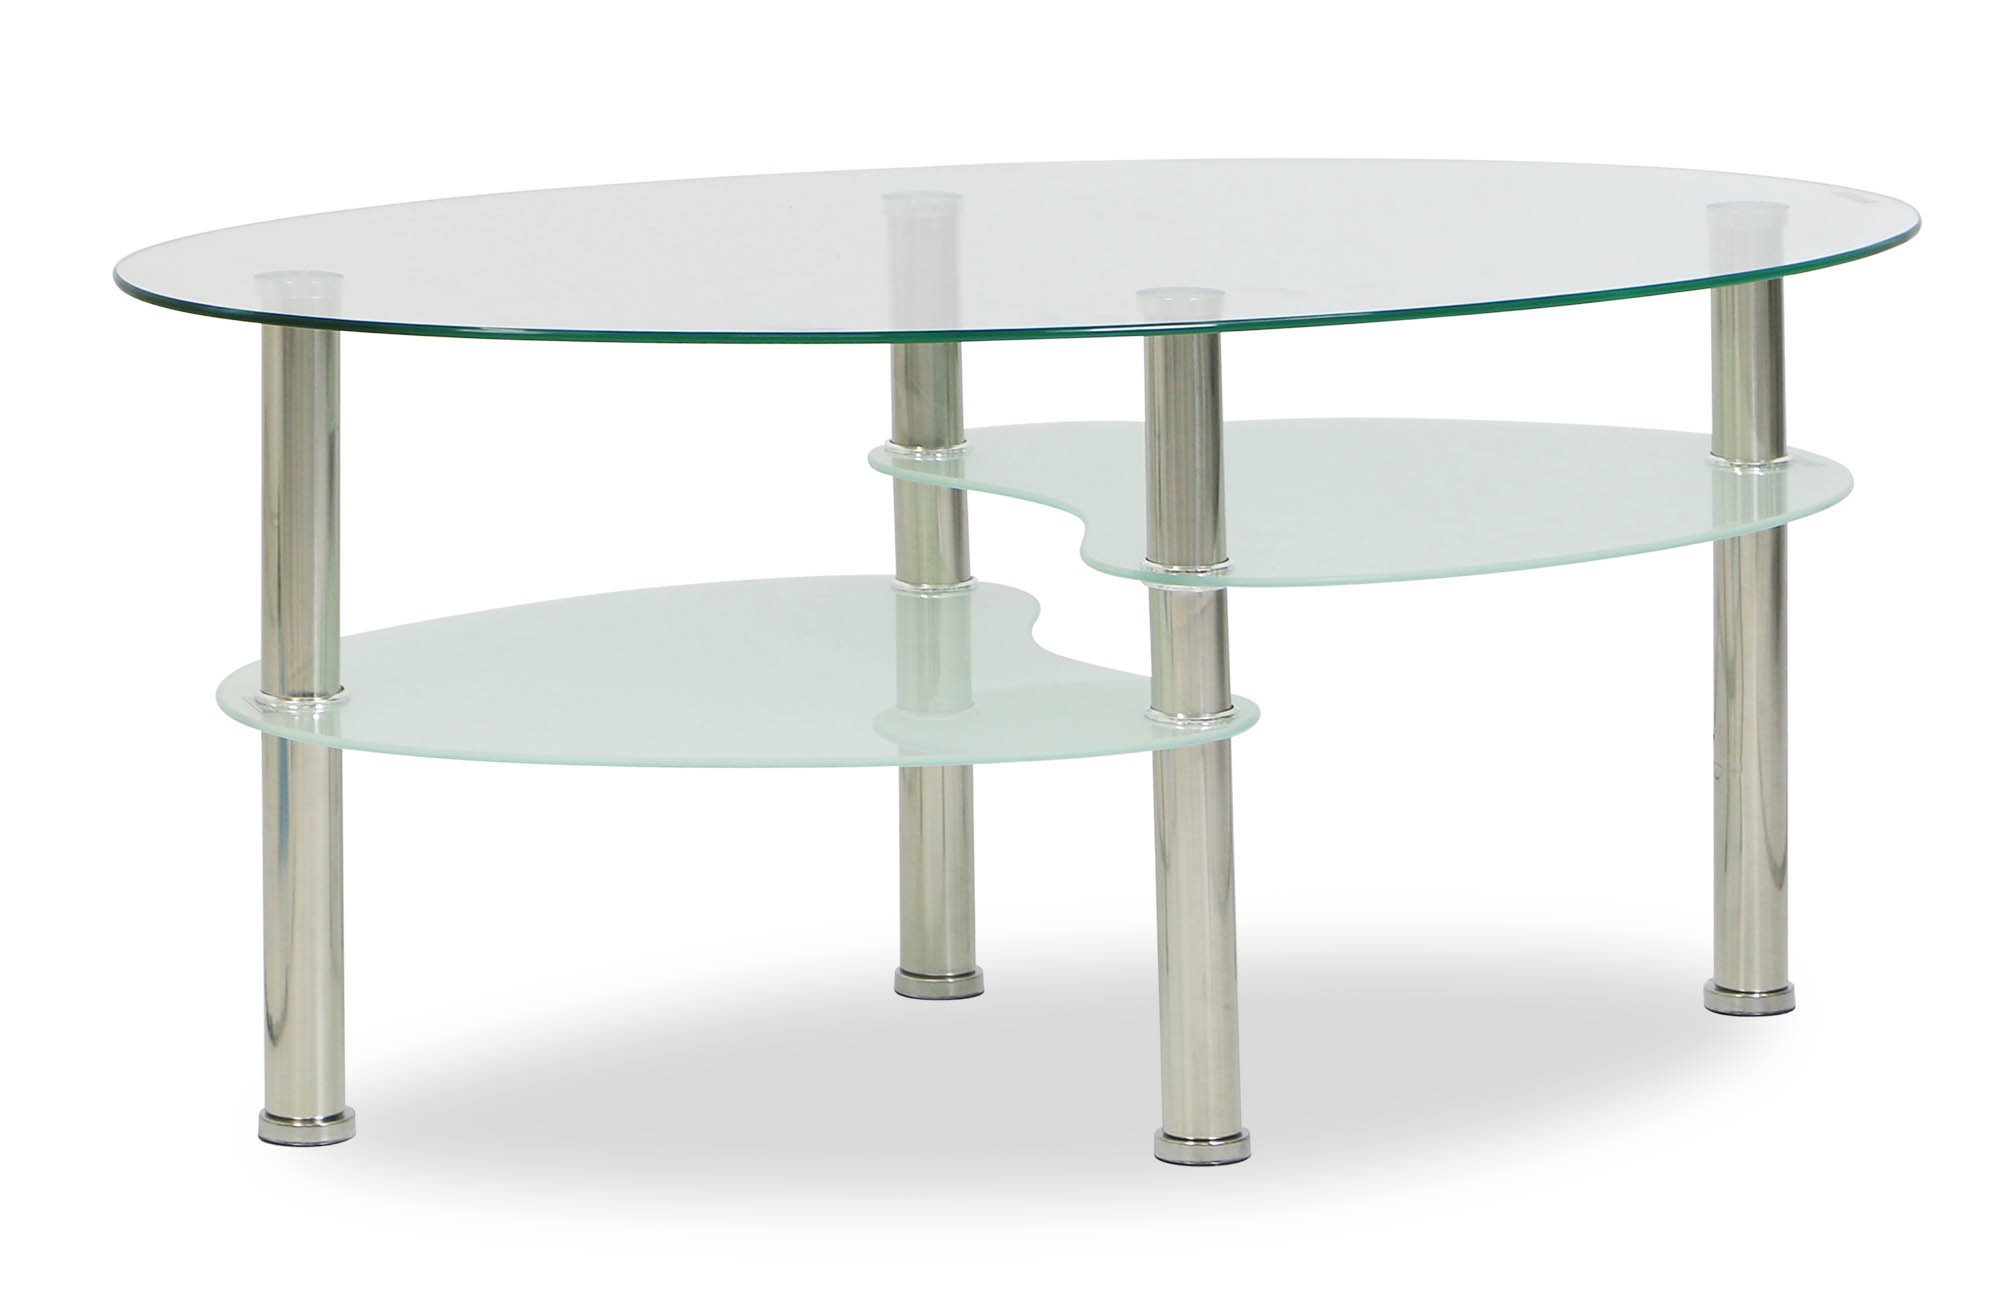 Krystal Eclipse Tempered Glass Coffee Table Coffee Tables Living Room Furniture Furniture